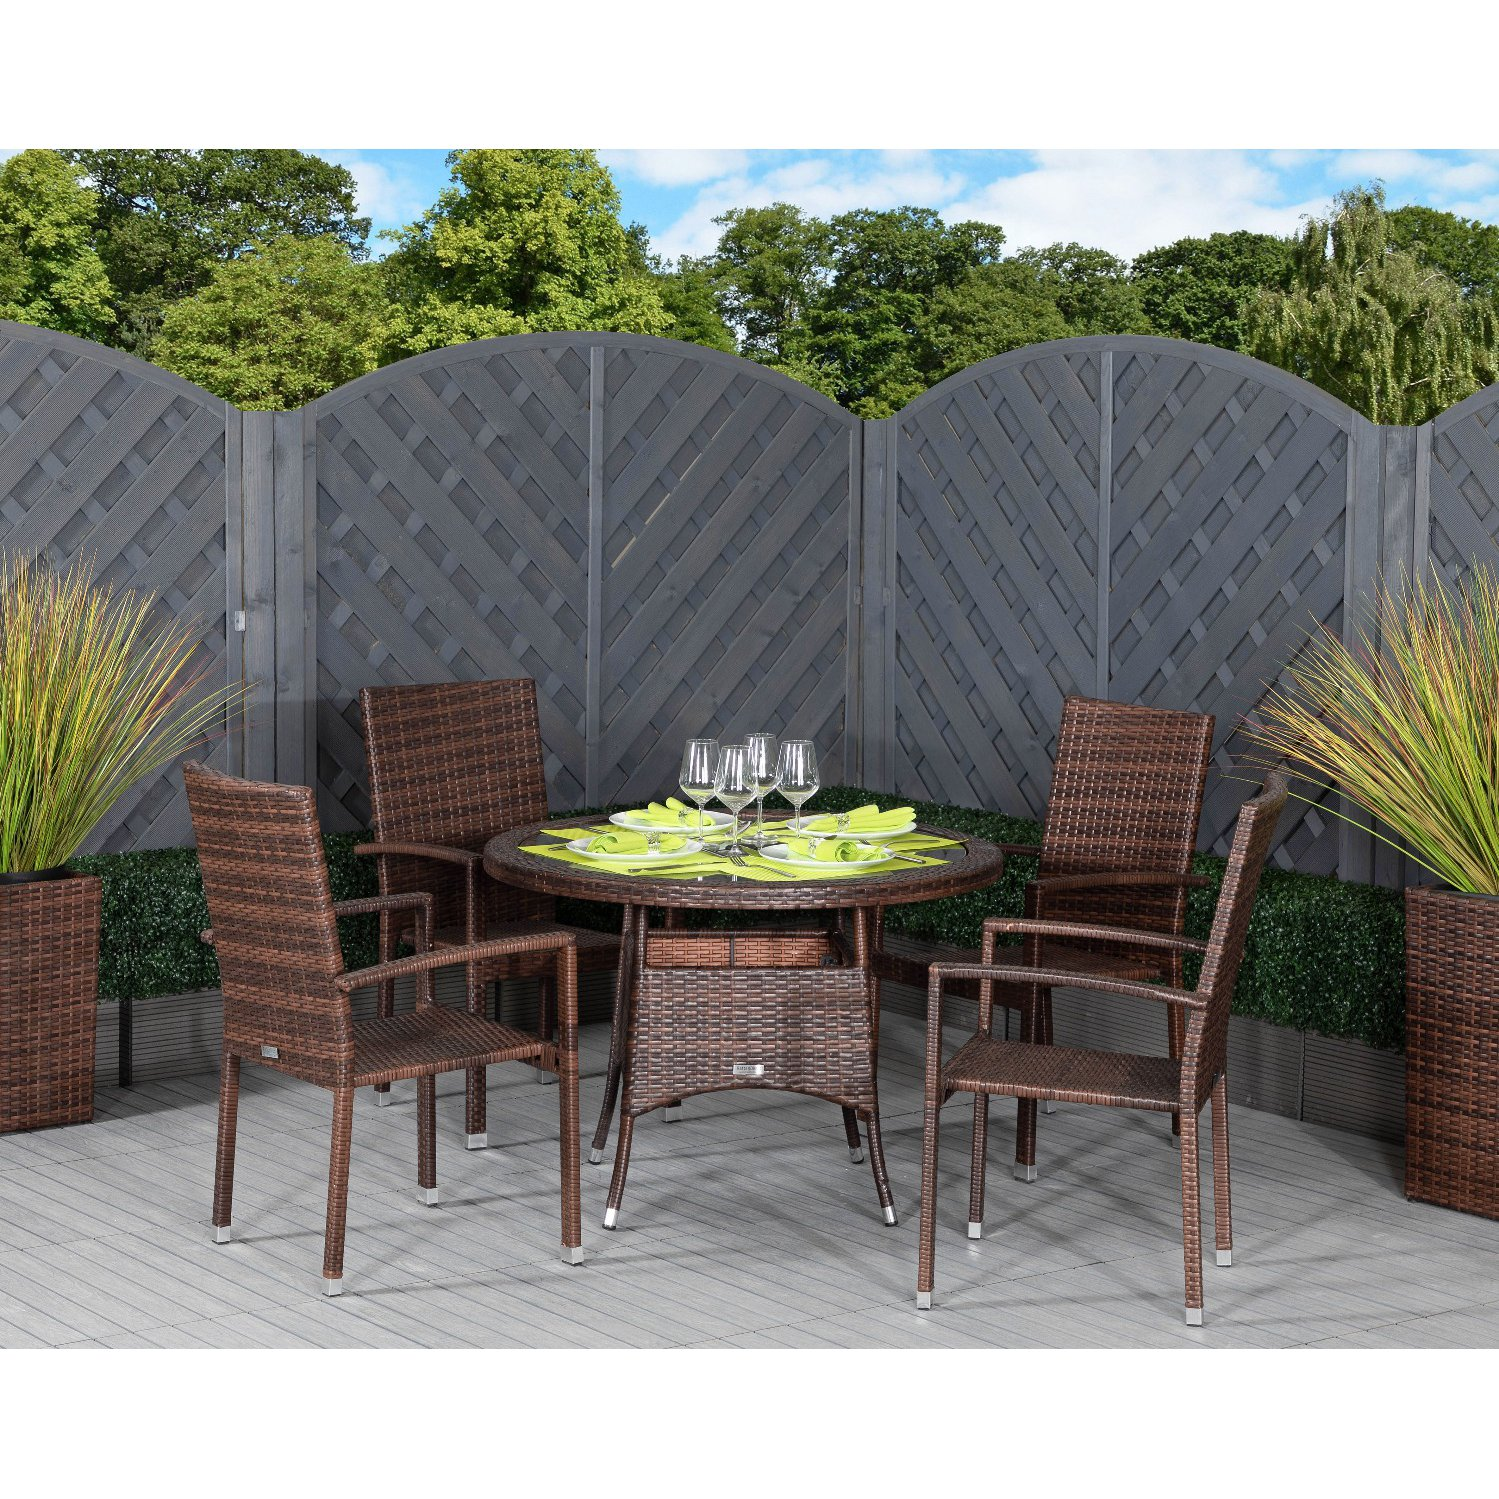 image-Rio 4 Armed Stacking Rattan Garden Chairs and Small Round Dining Table in Chocolate Mix